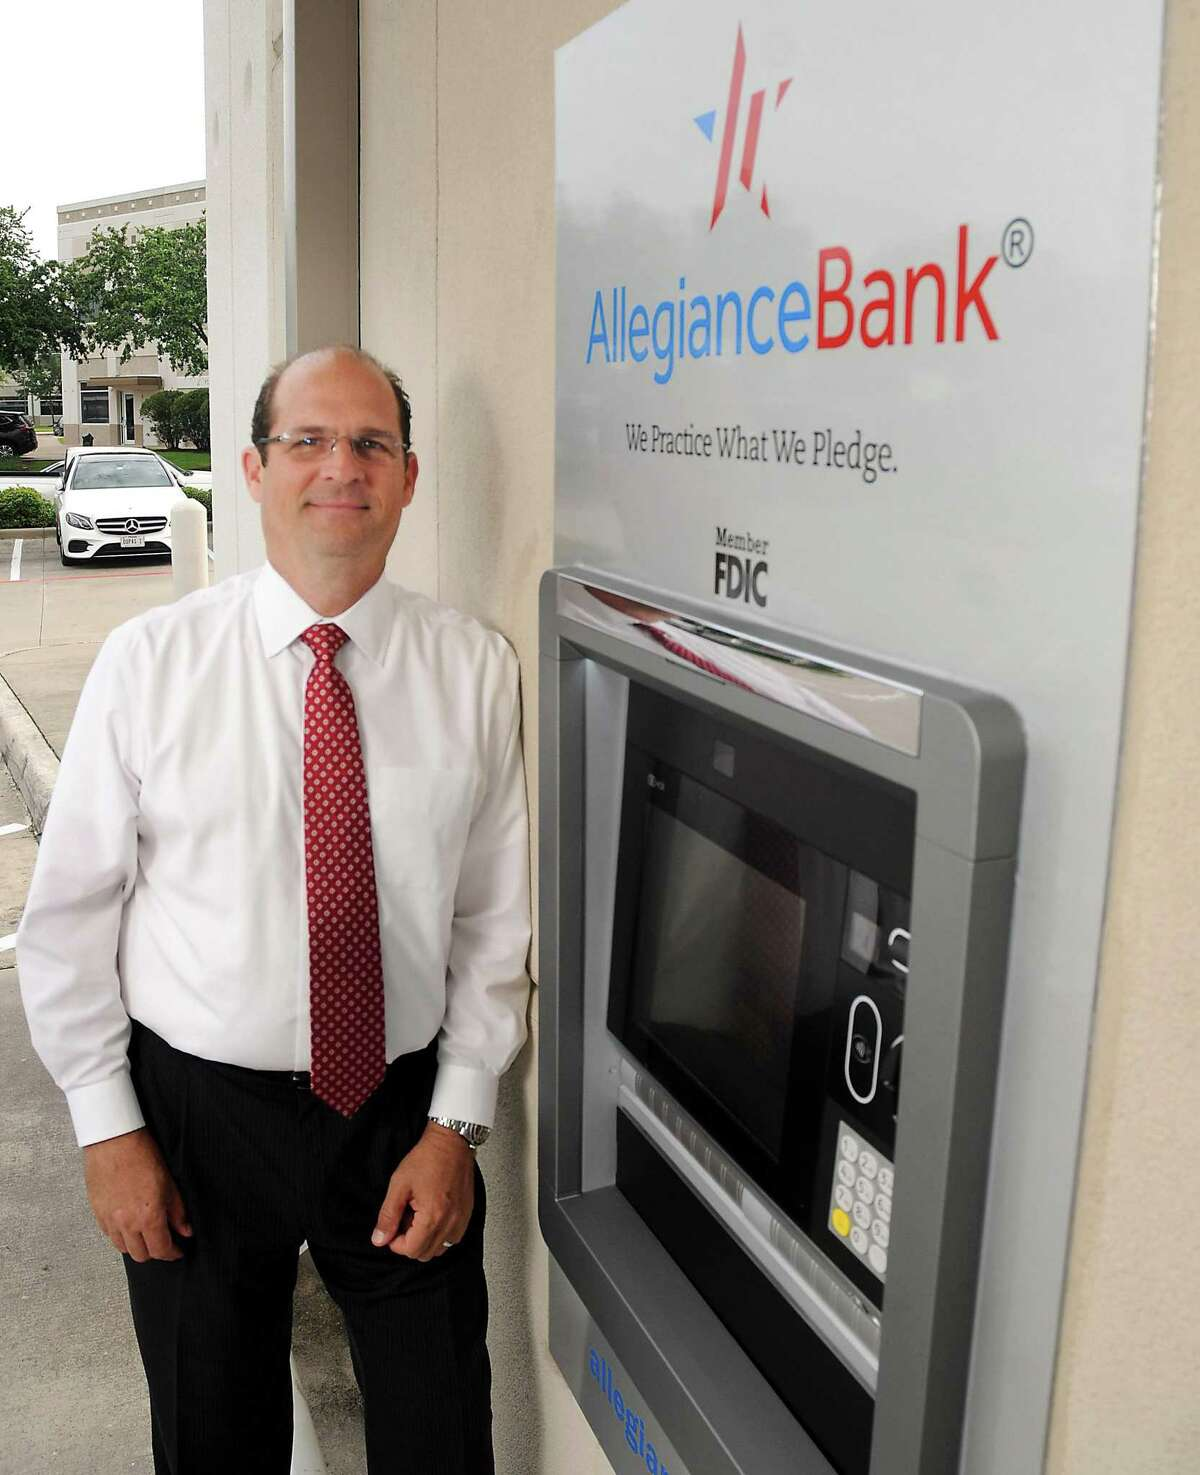 Ray Vitulli, president and COO of Allegiance Bank, stands by a new ATM near company offices Friday, May 31, 2019.